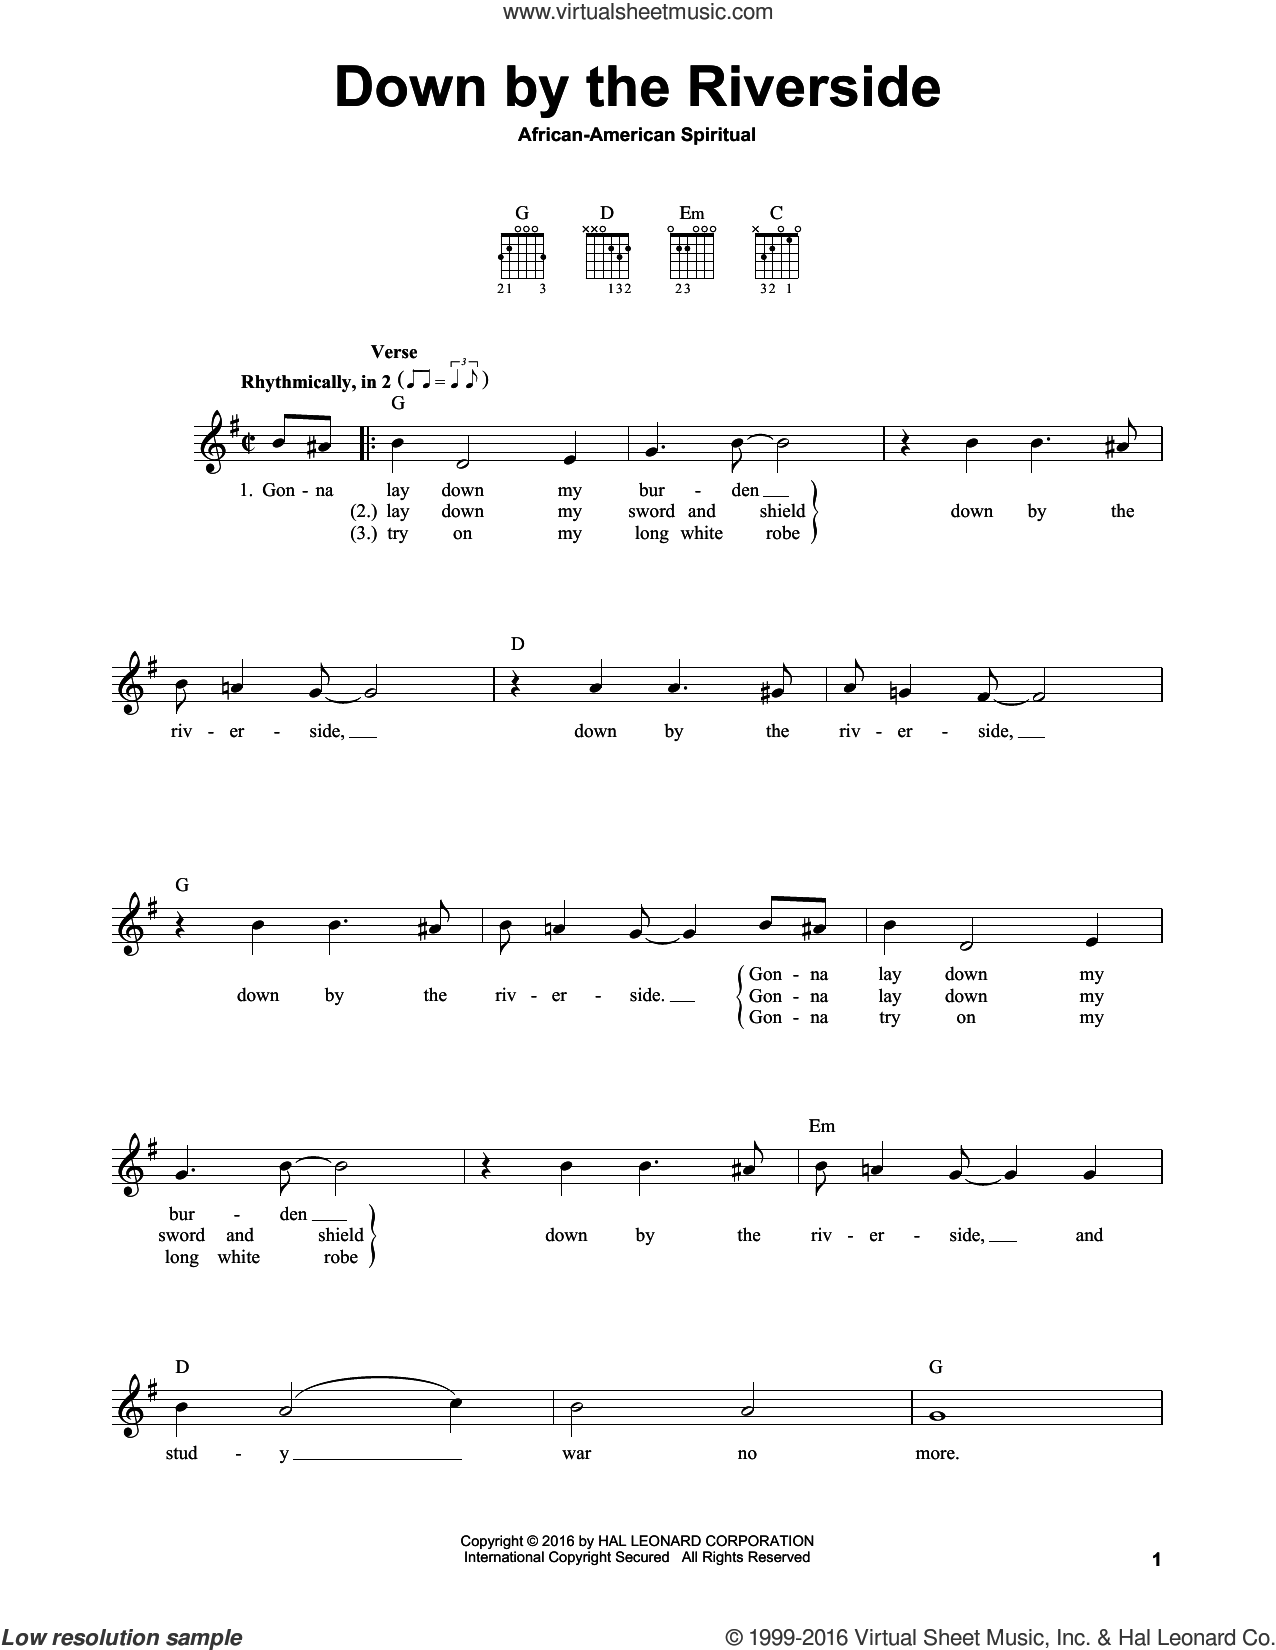 Down By The Riverside sheet music for guitar solo (chords). Score Image Preview.